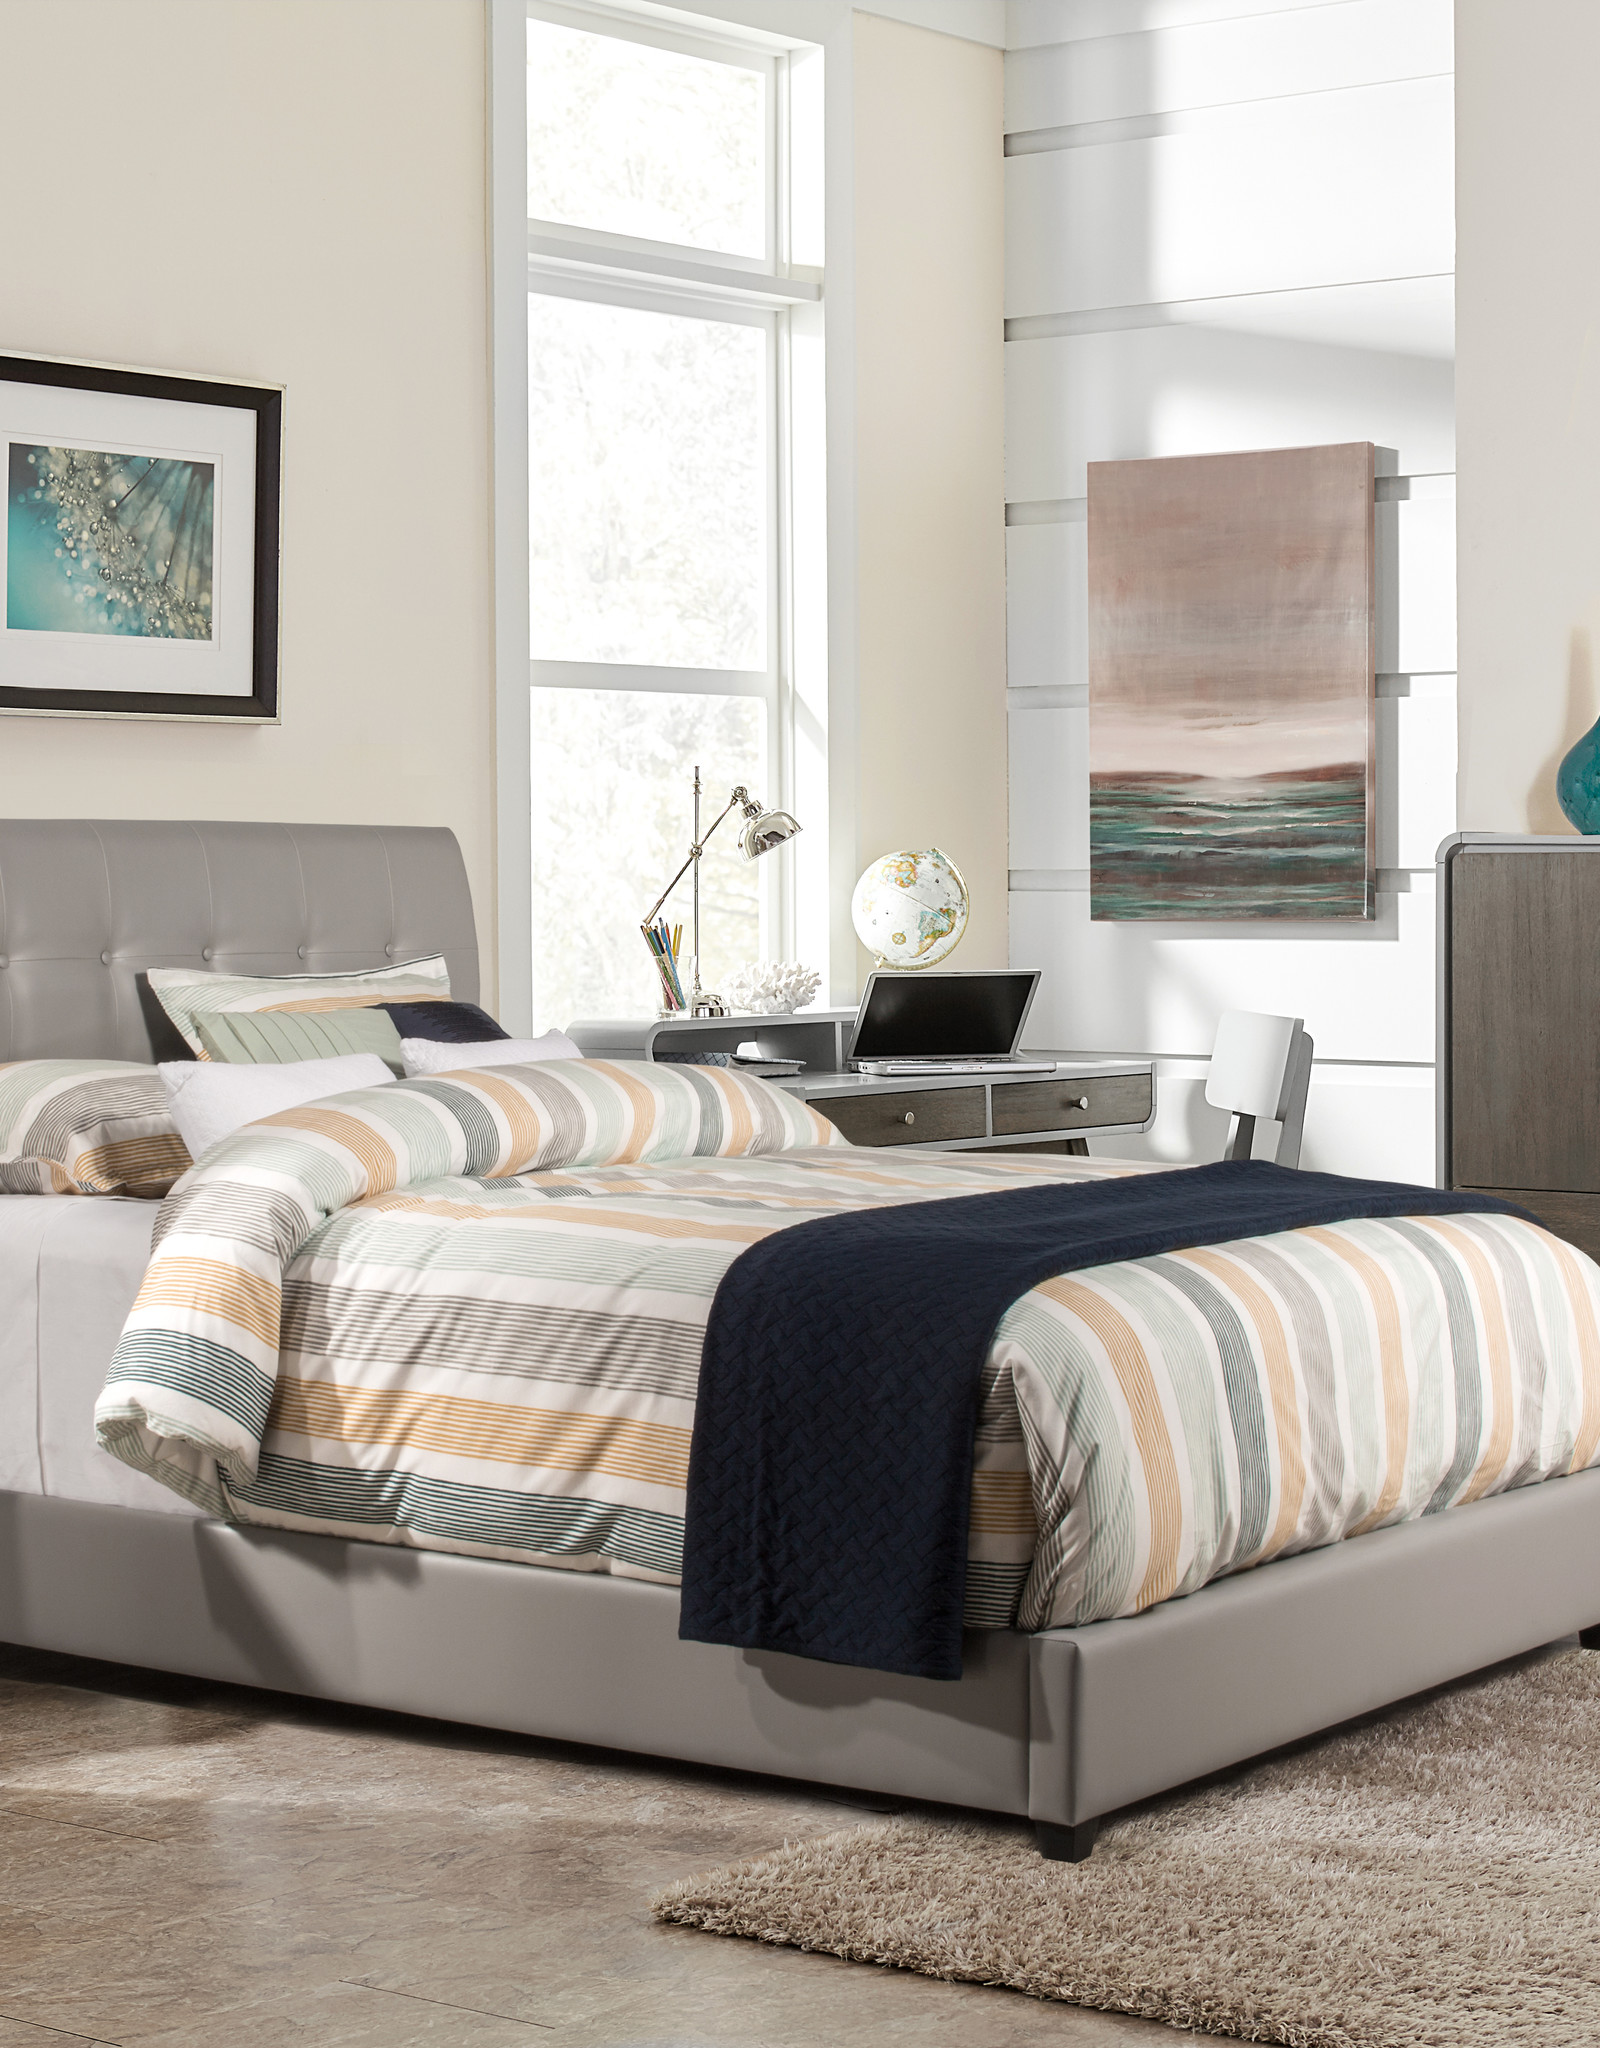 Lusso Bed (Gray) (Includes headboard, footboard, and rails)